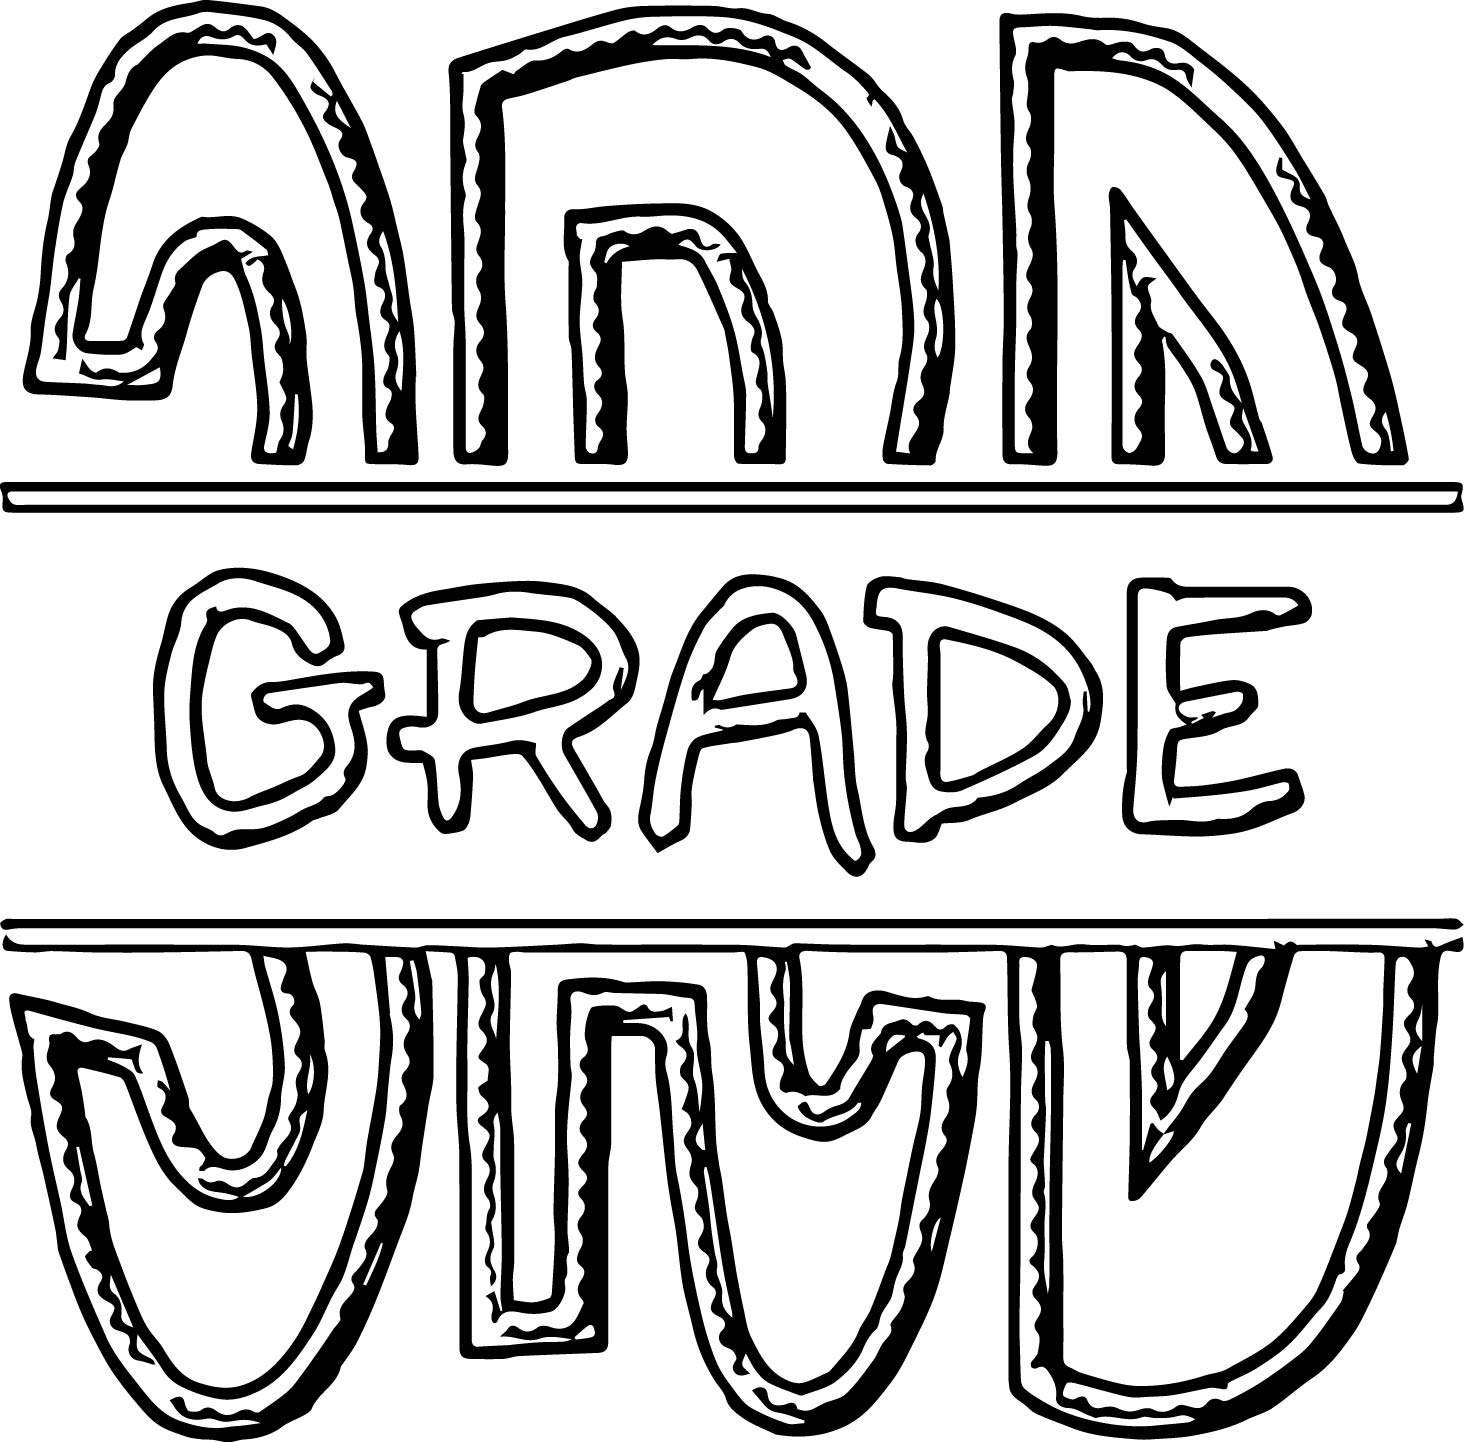 coloring grade 3 3rd grade coloring pages free download on clipartmag grade 3 coloring